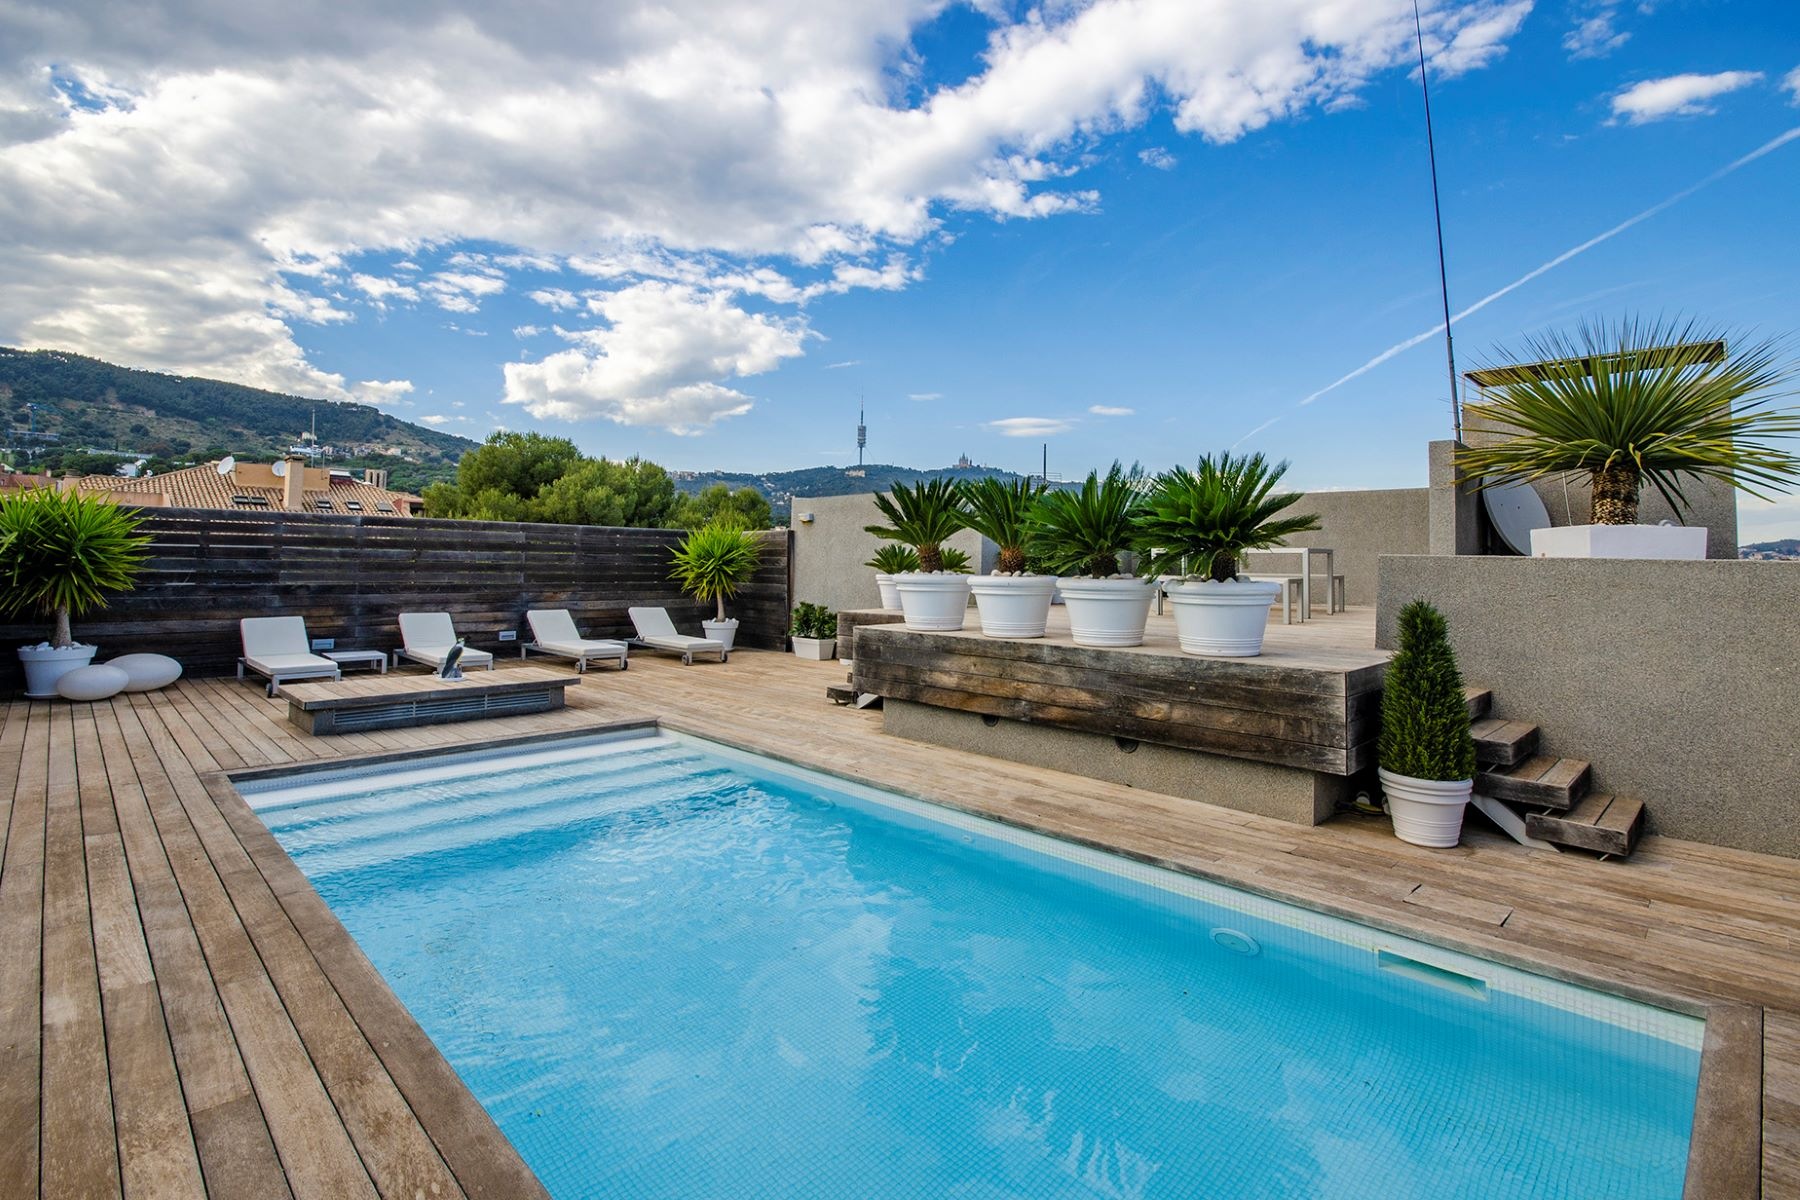 Apartment for Sale at Large penthouse with private terrace and pool in Pedralbes Barcelona City, Barcelona 08034 Spain